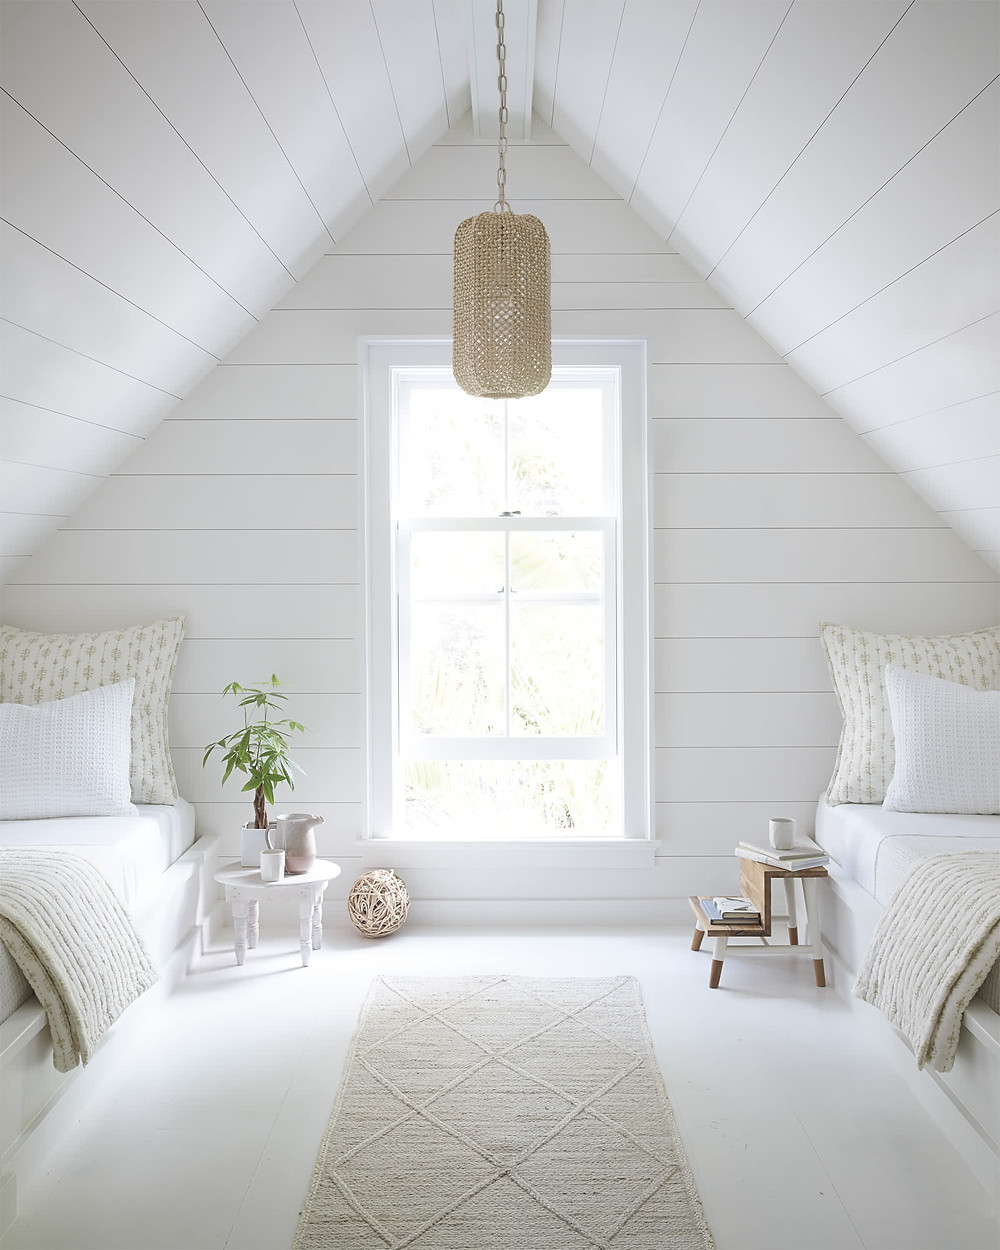 attic bedroom with natural light shiplap walls and vaulted a-frame ceiling two twin beds with wool rug runner natural beige sheets and pillow cases small wood side tables rattan hanging pendant light